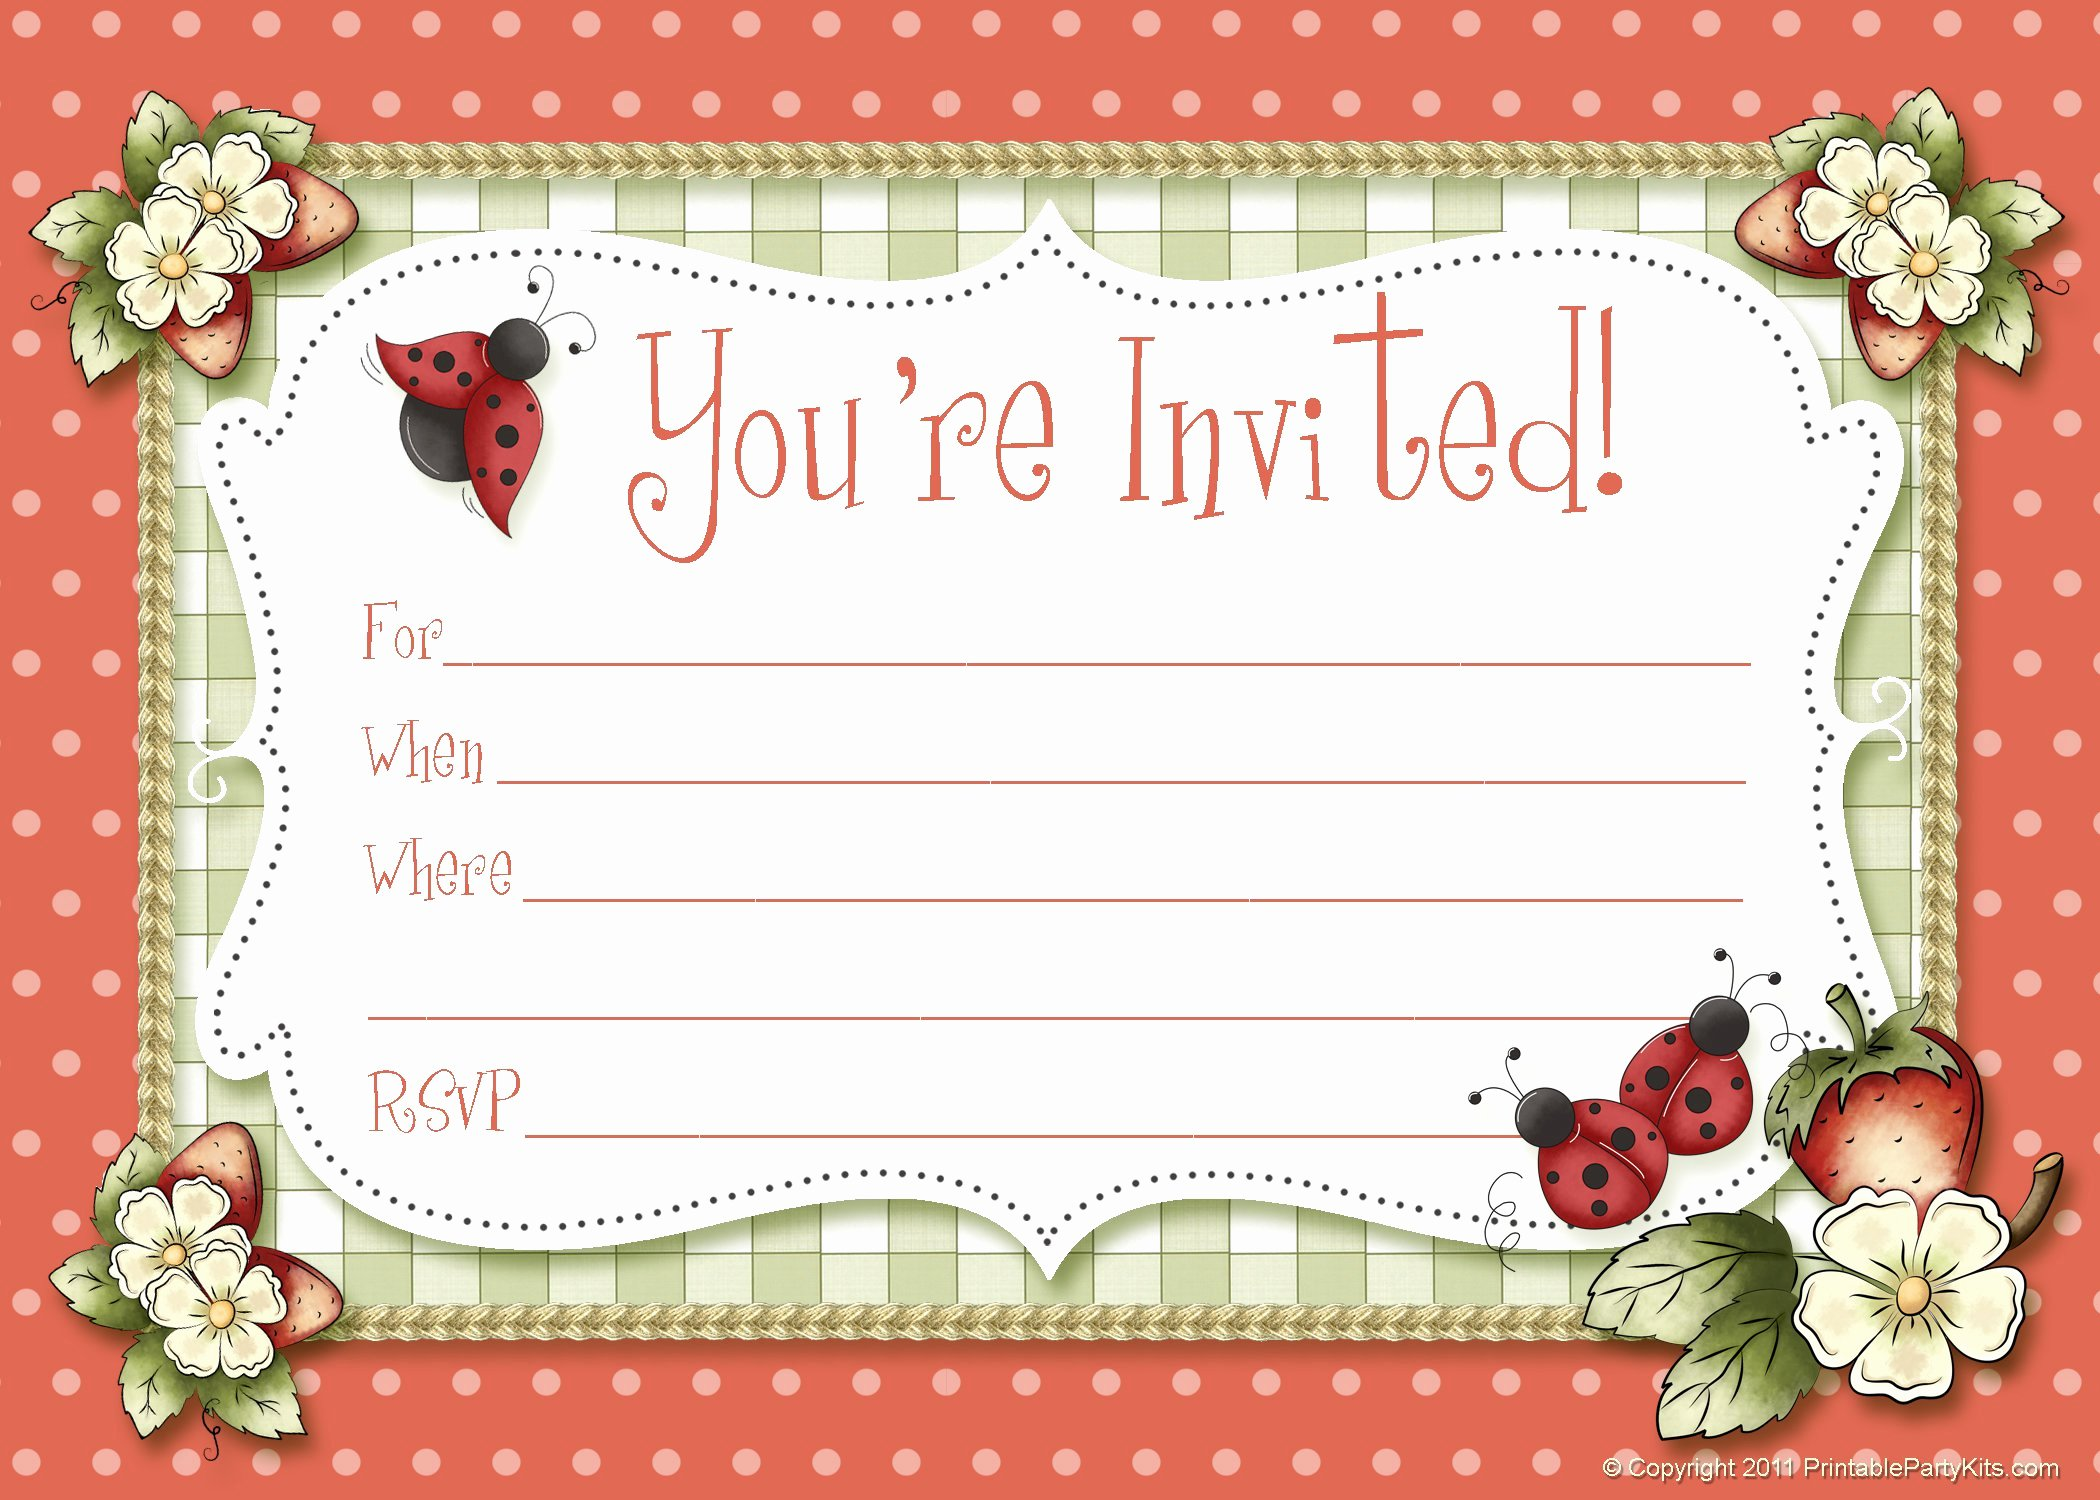 Christmas Dinner Invitation Template Free Lovely Holiday Dinner Invitation Blank